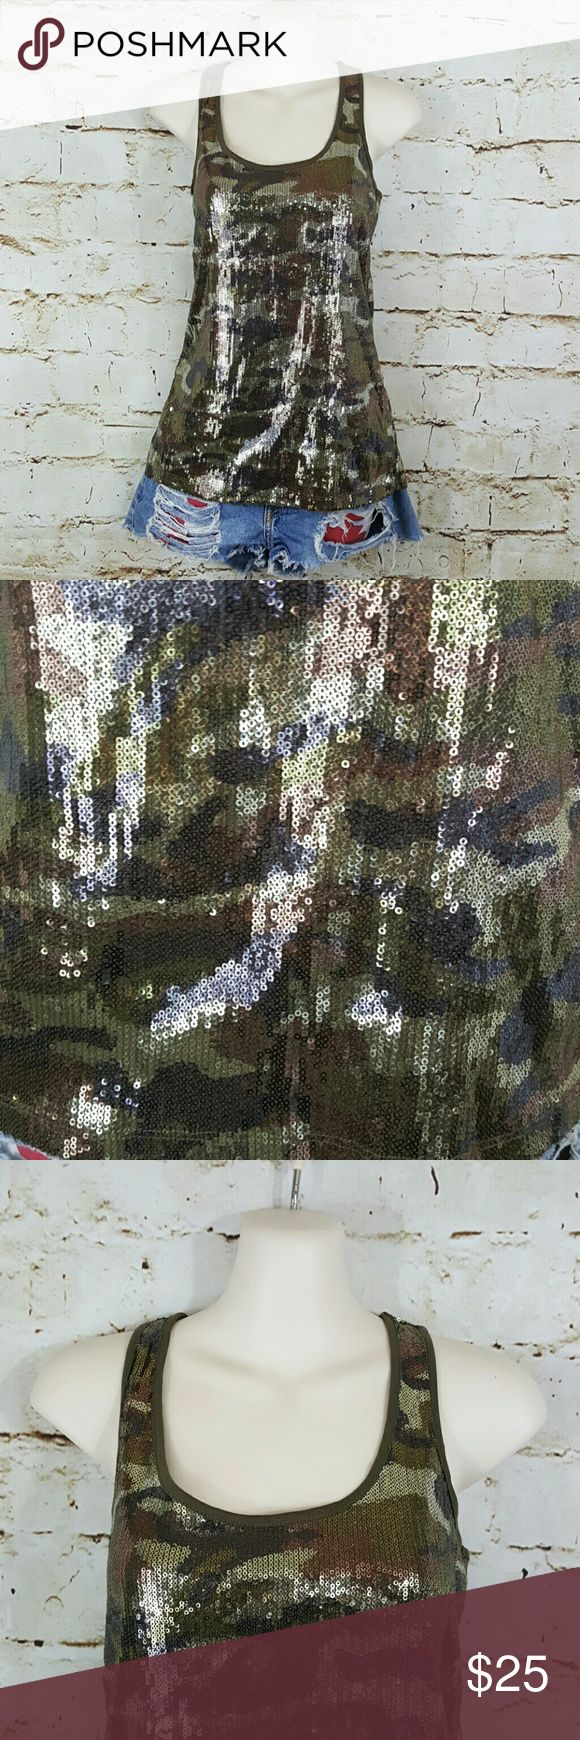 "DKNY Super sequin detailed racerback camo tank top Excellent condition like new Racerback tank top with complete outer detail in sequins. All sequins in tact. 16"" across from armpit to armpit and 26"" long from shoulder to hem the tank has lots of stretch! DKNY Tops"